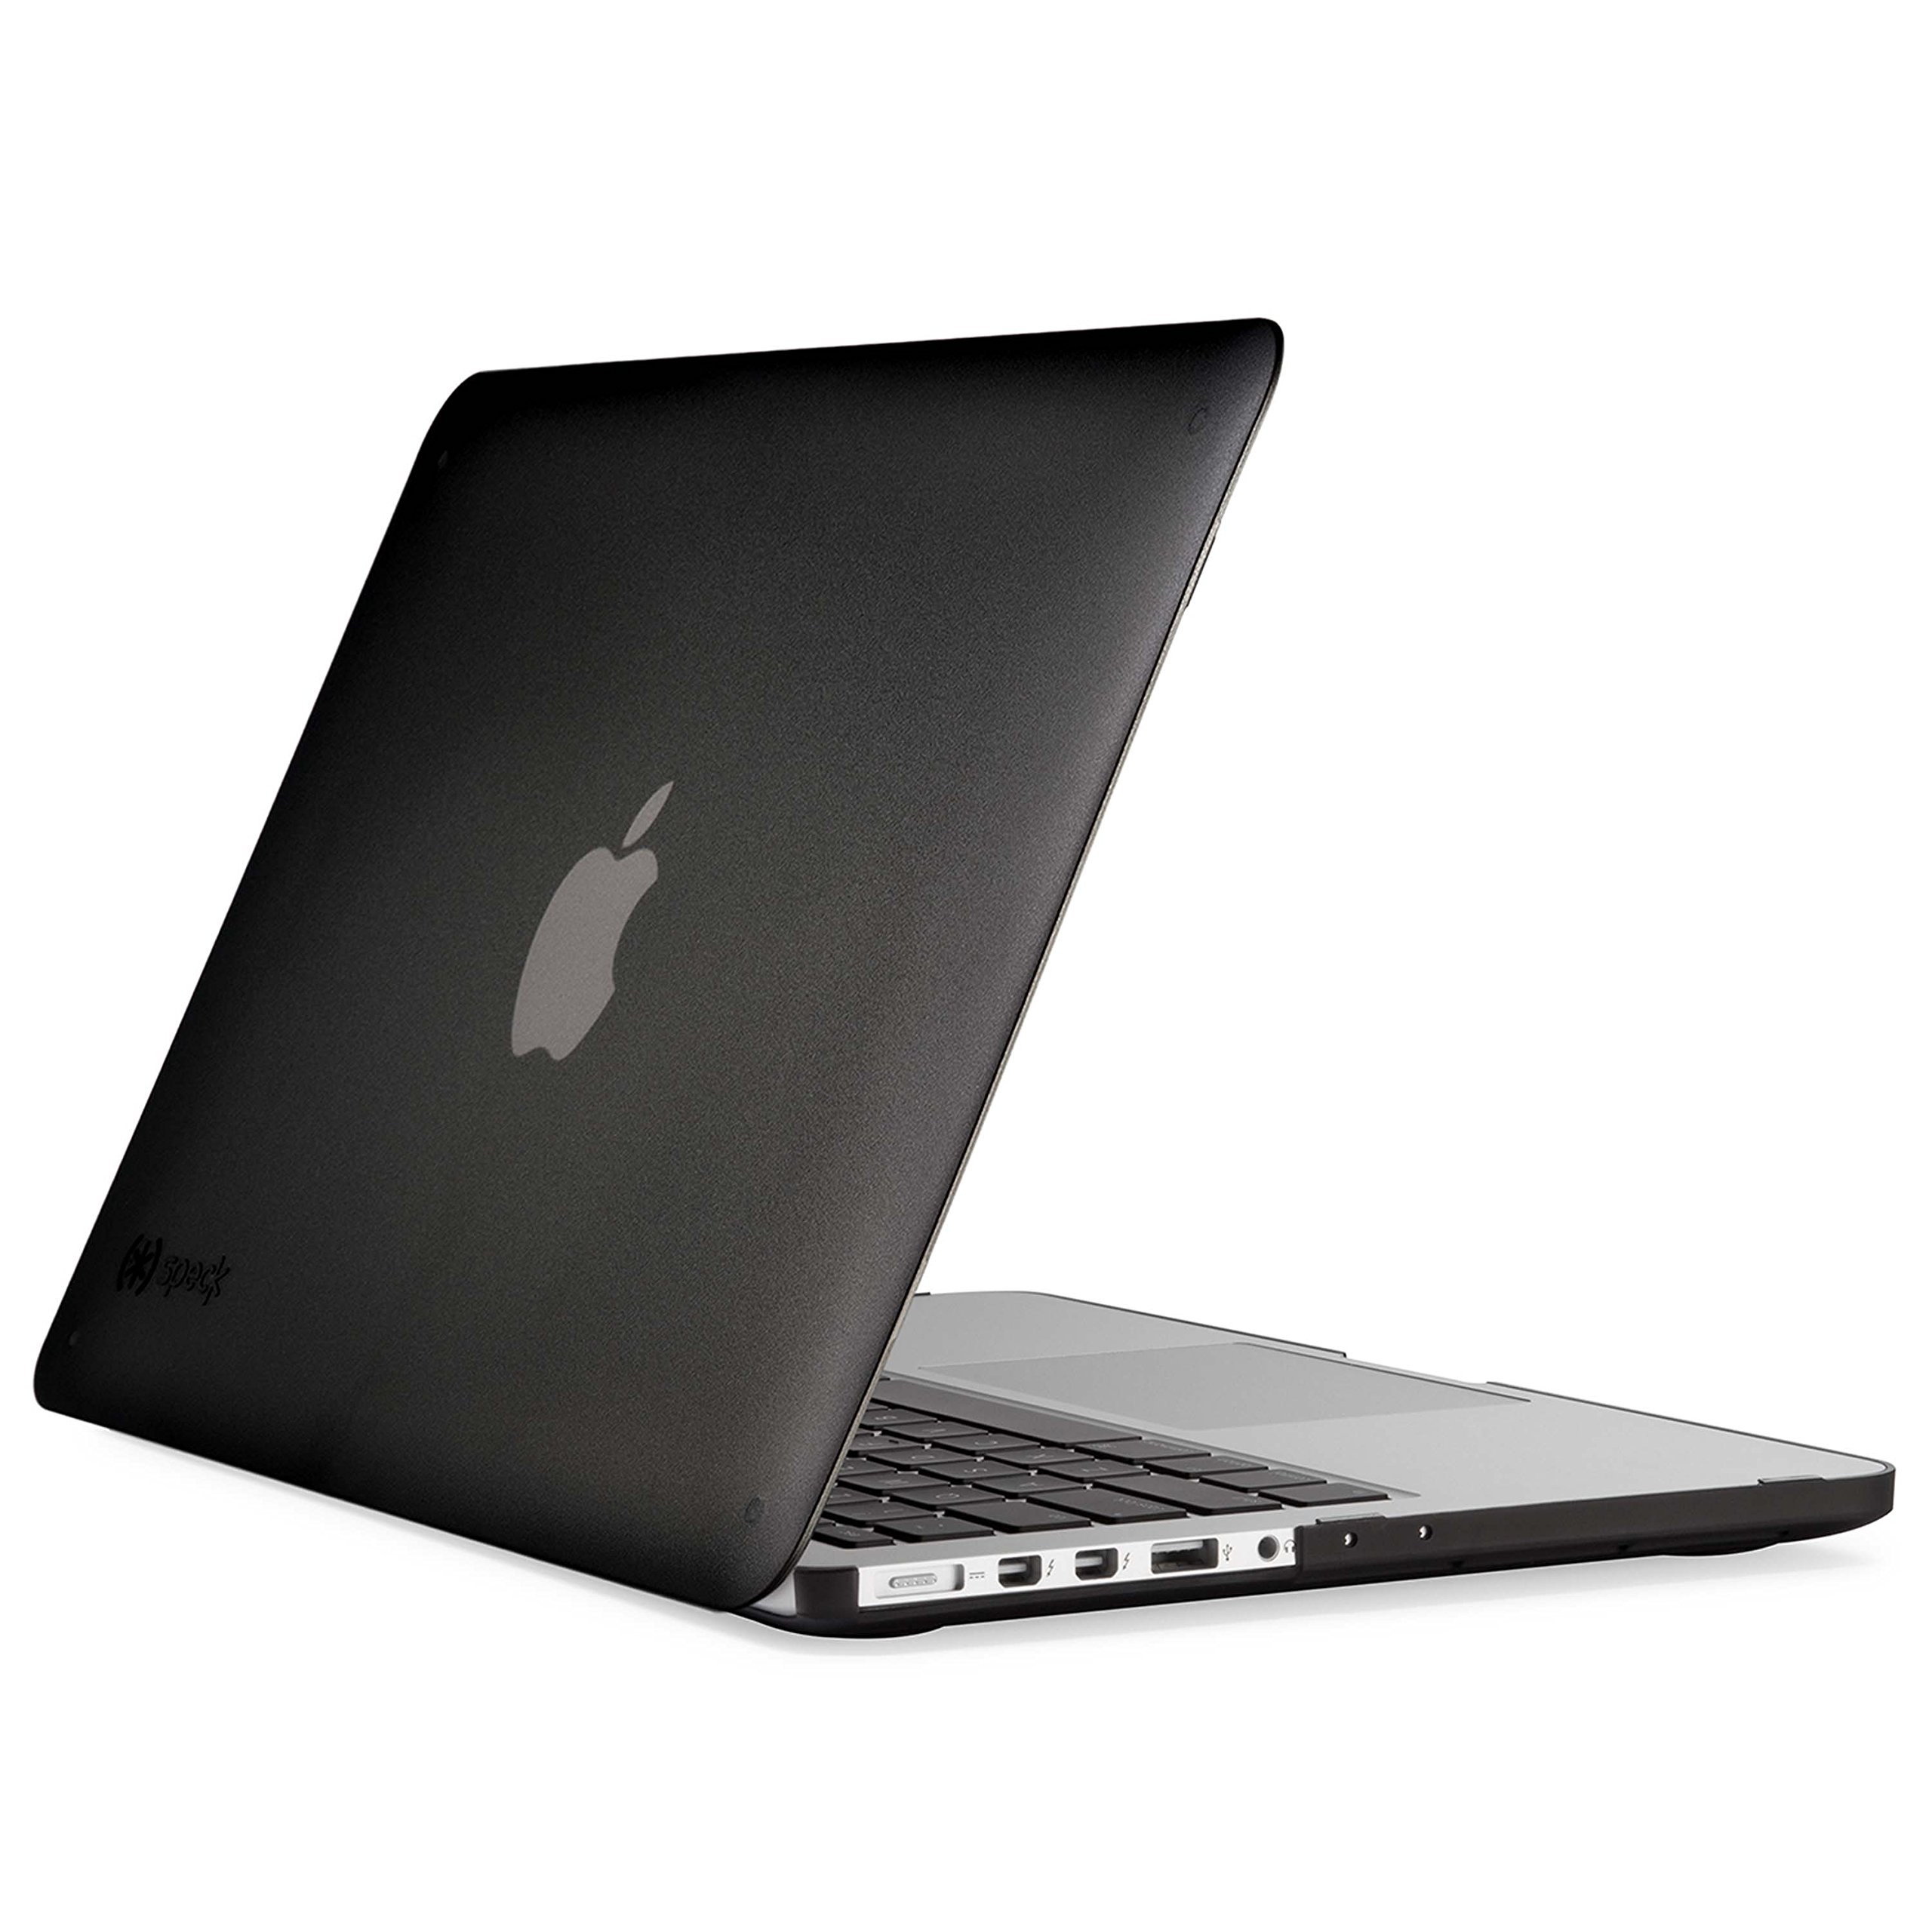 Speck Products See Thru Onyx Case for Macbook Pro 13 Inch with Retina Display, Black Matte by Speck (Image #1)